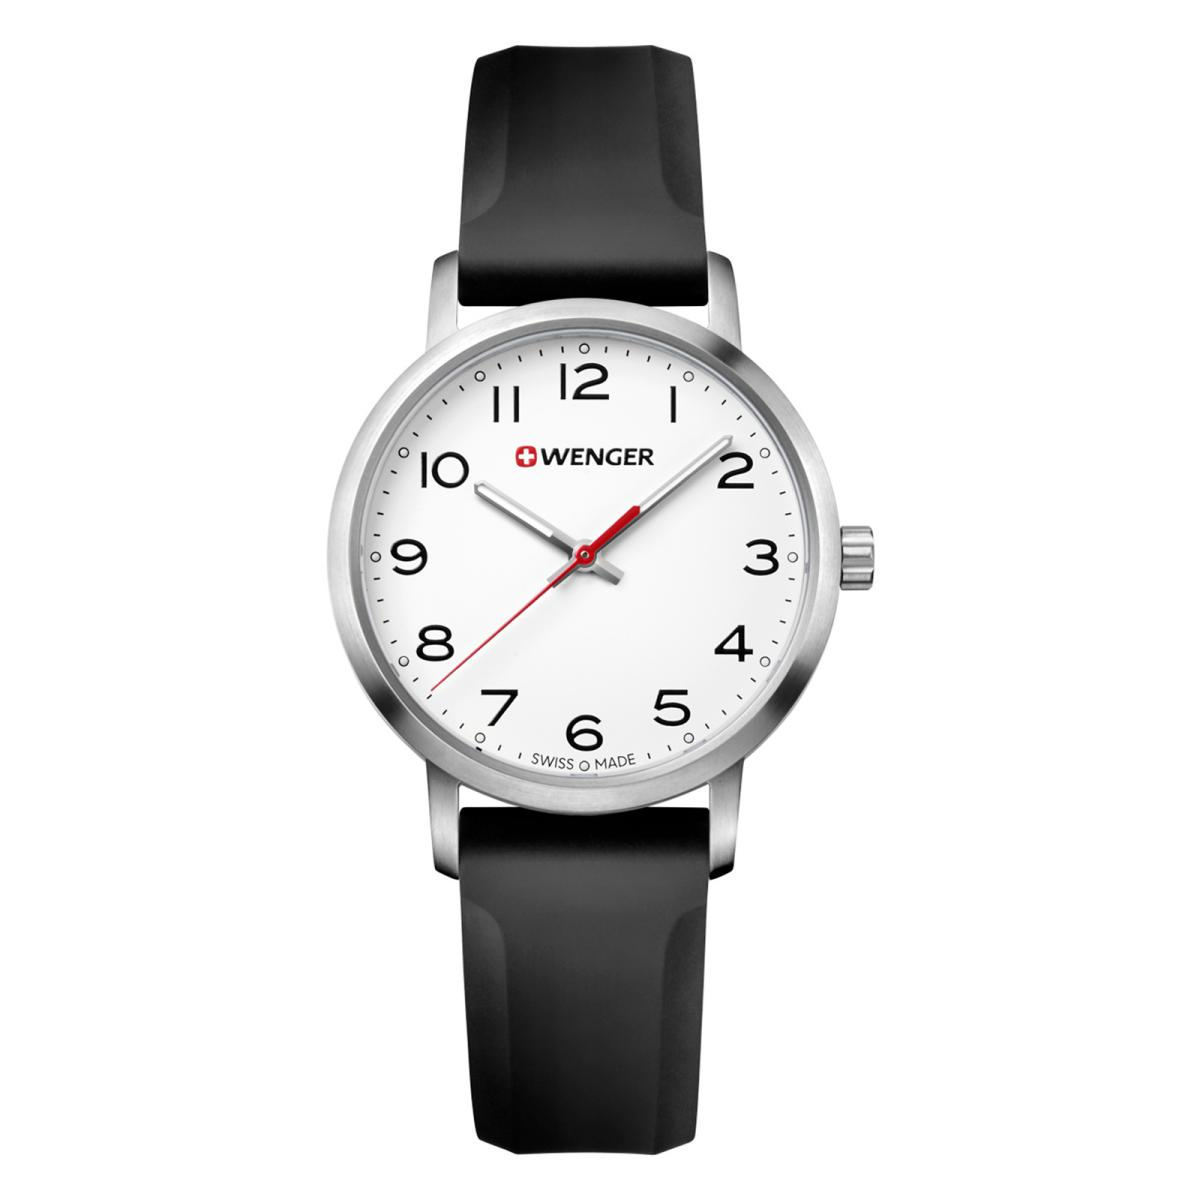 bddfac4f0d6d Reloj Wenger - 01.1621.103 - MUJER - Time Square